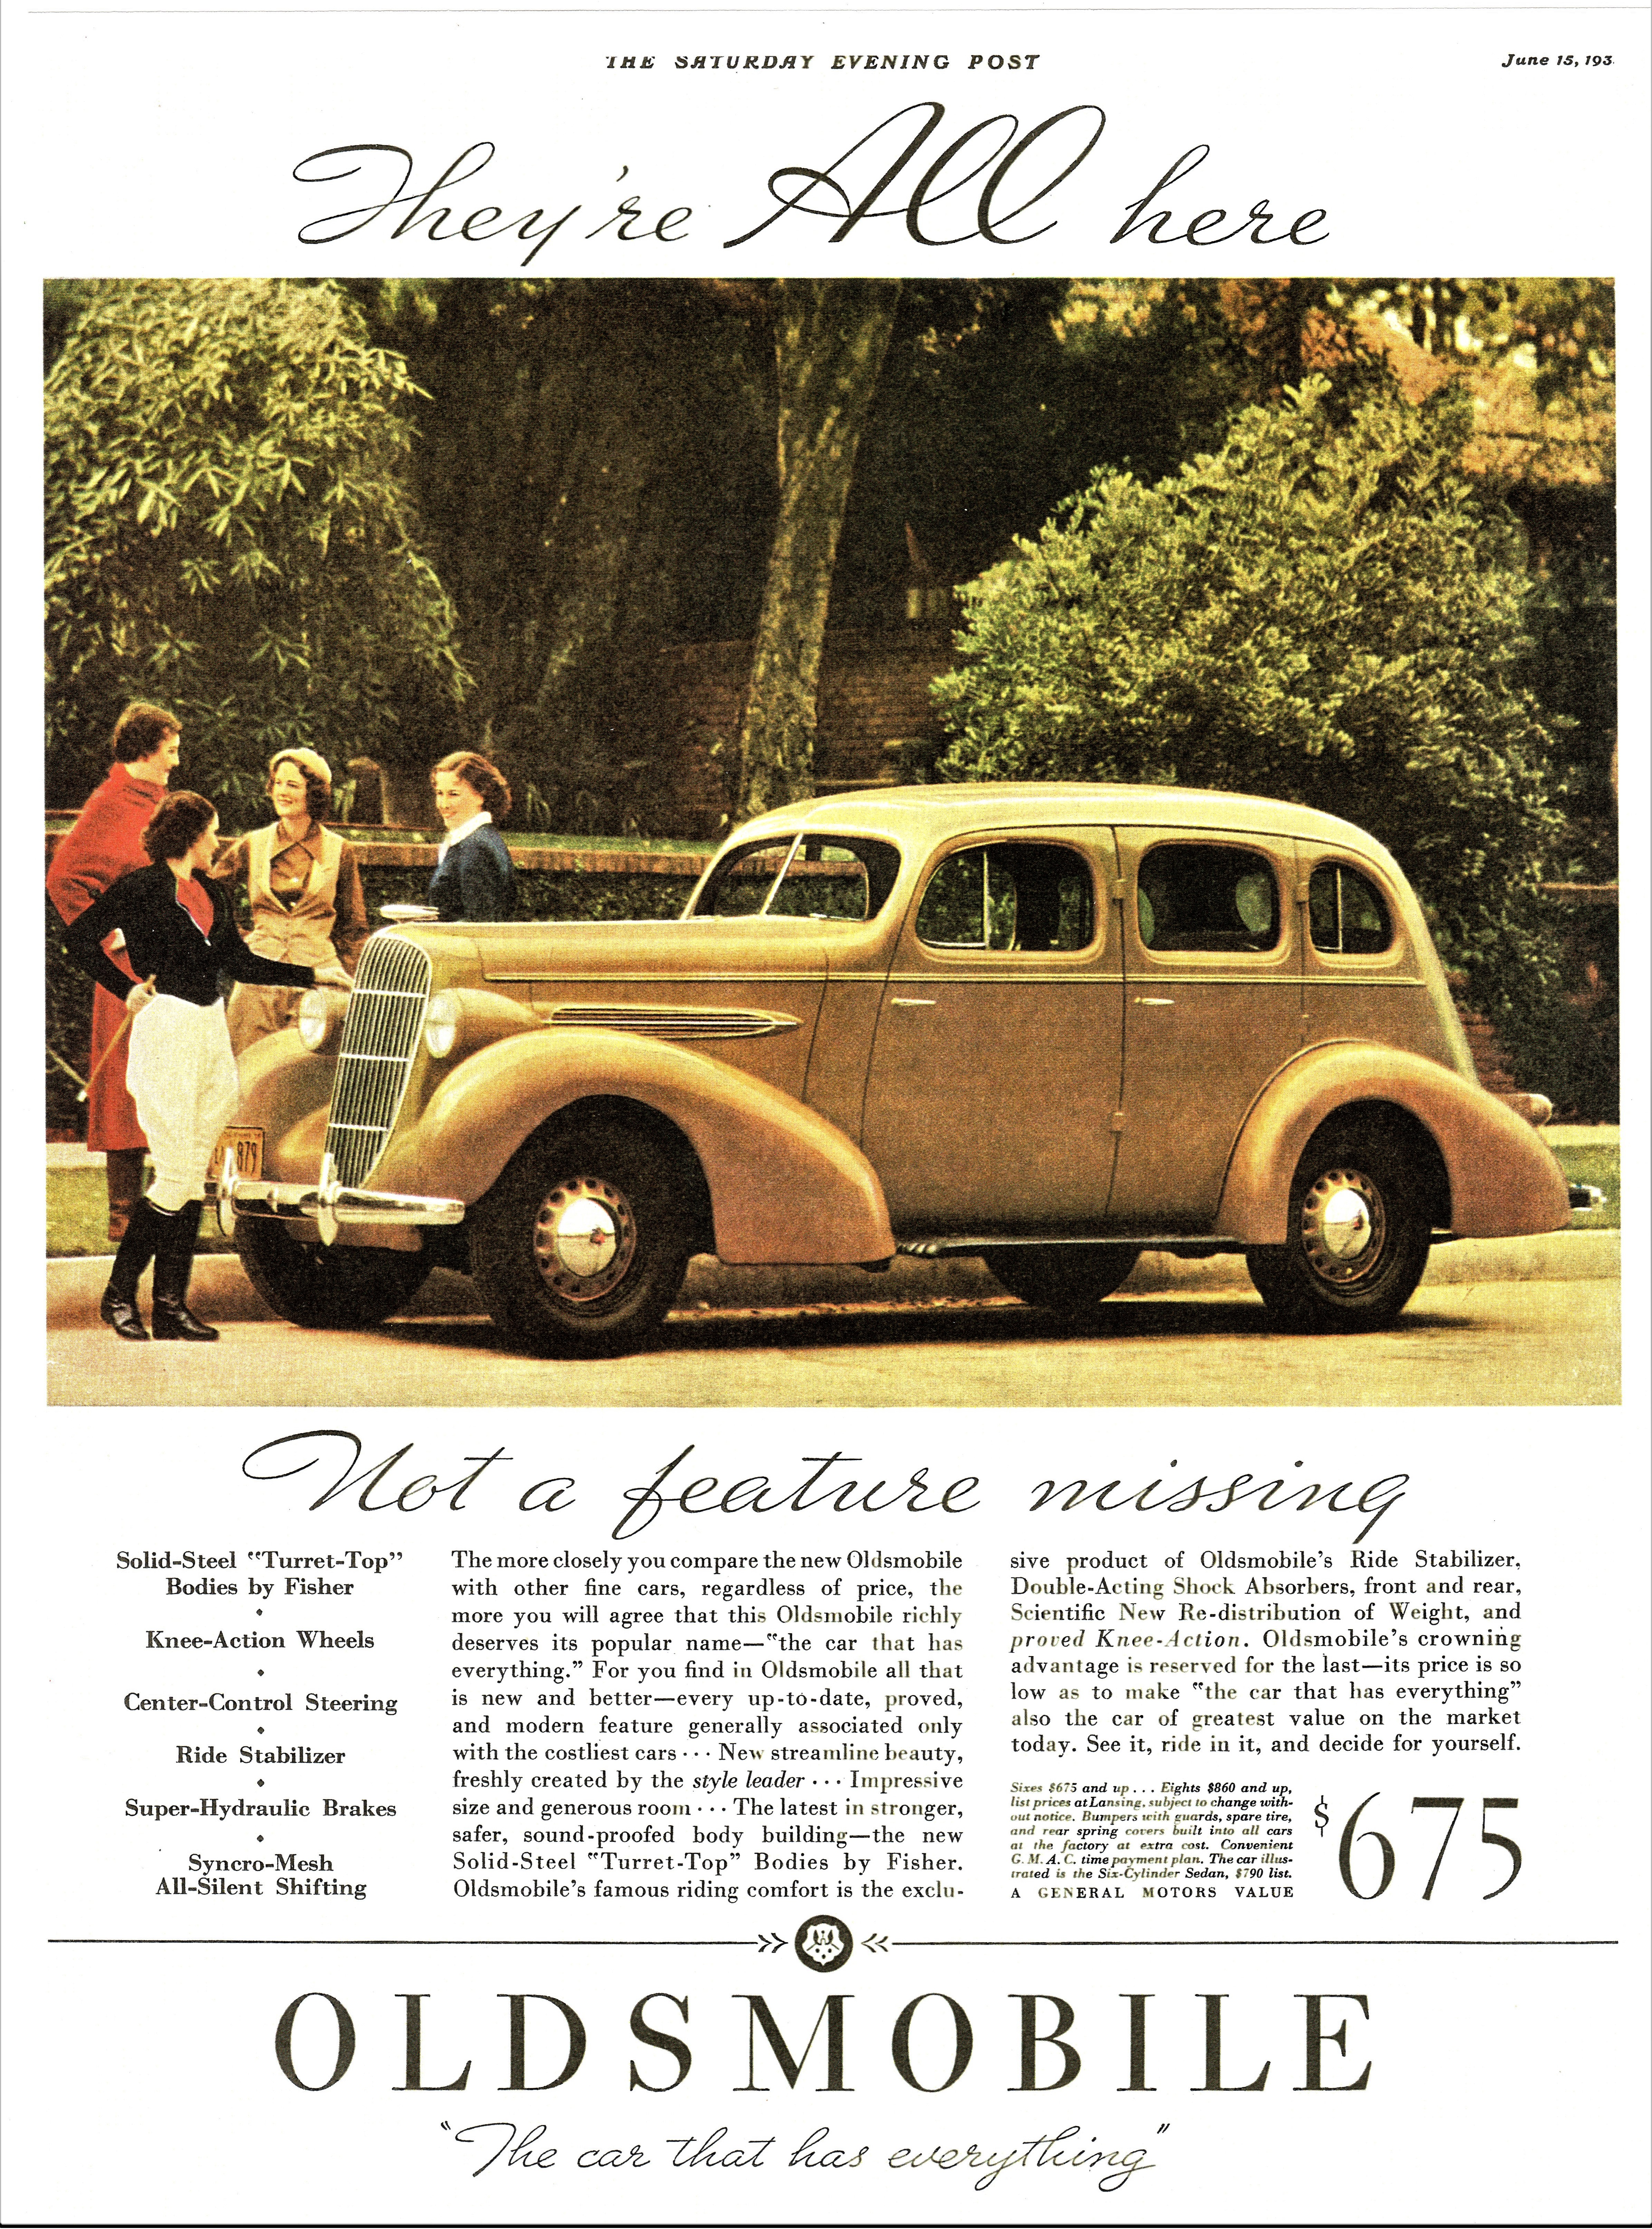 1935 Oldsmobile Six 4-Door Sedan - published in The Saturday Evening Post - June 15, 1935